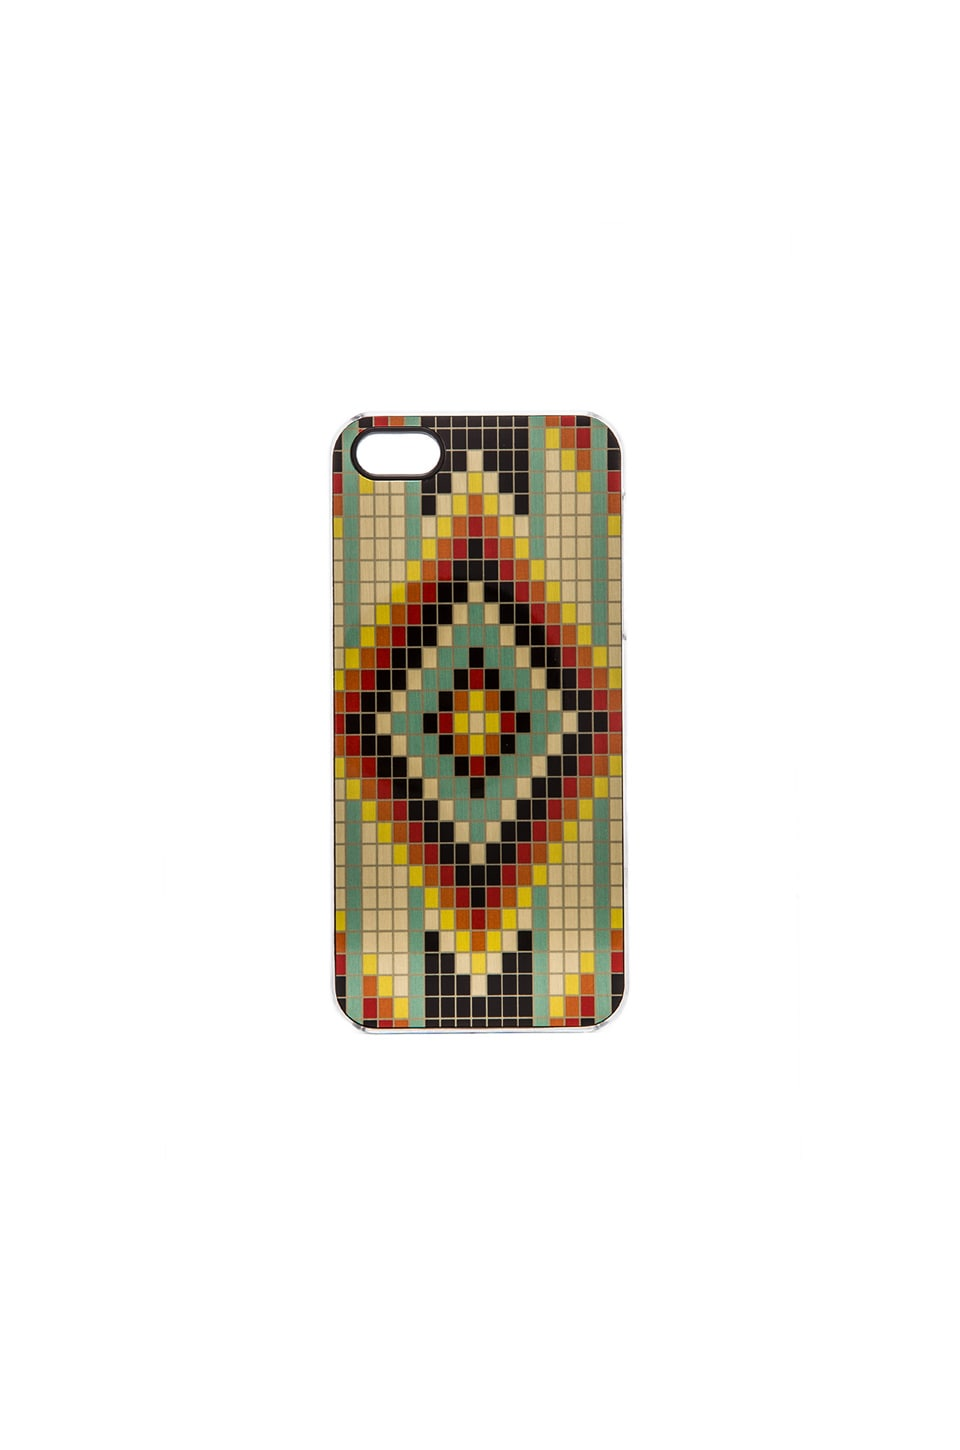 ZERO GRAVITY Santa Fe iPhone 5 Case in Multi